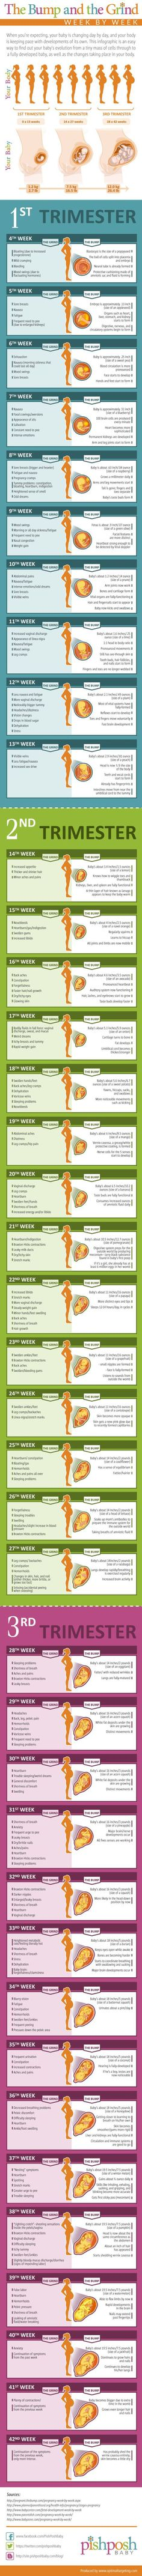 Pregnancy Week by Week Chart More